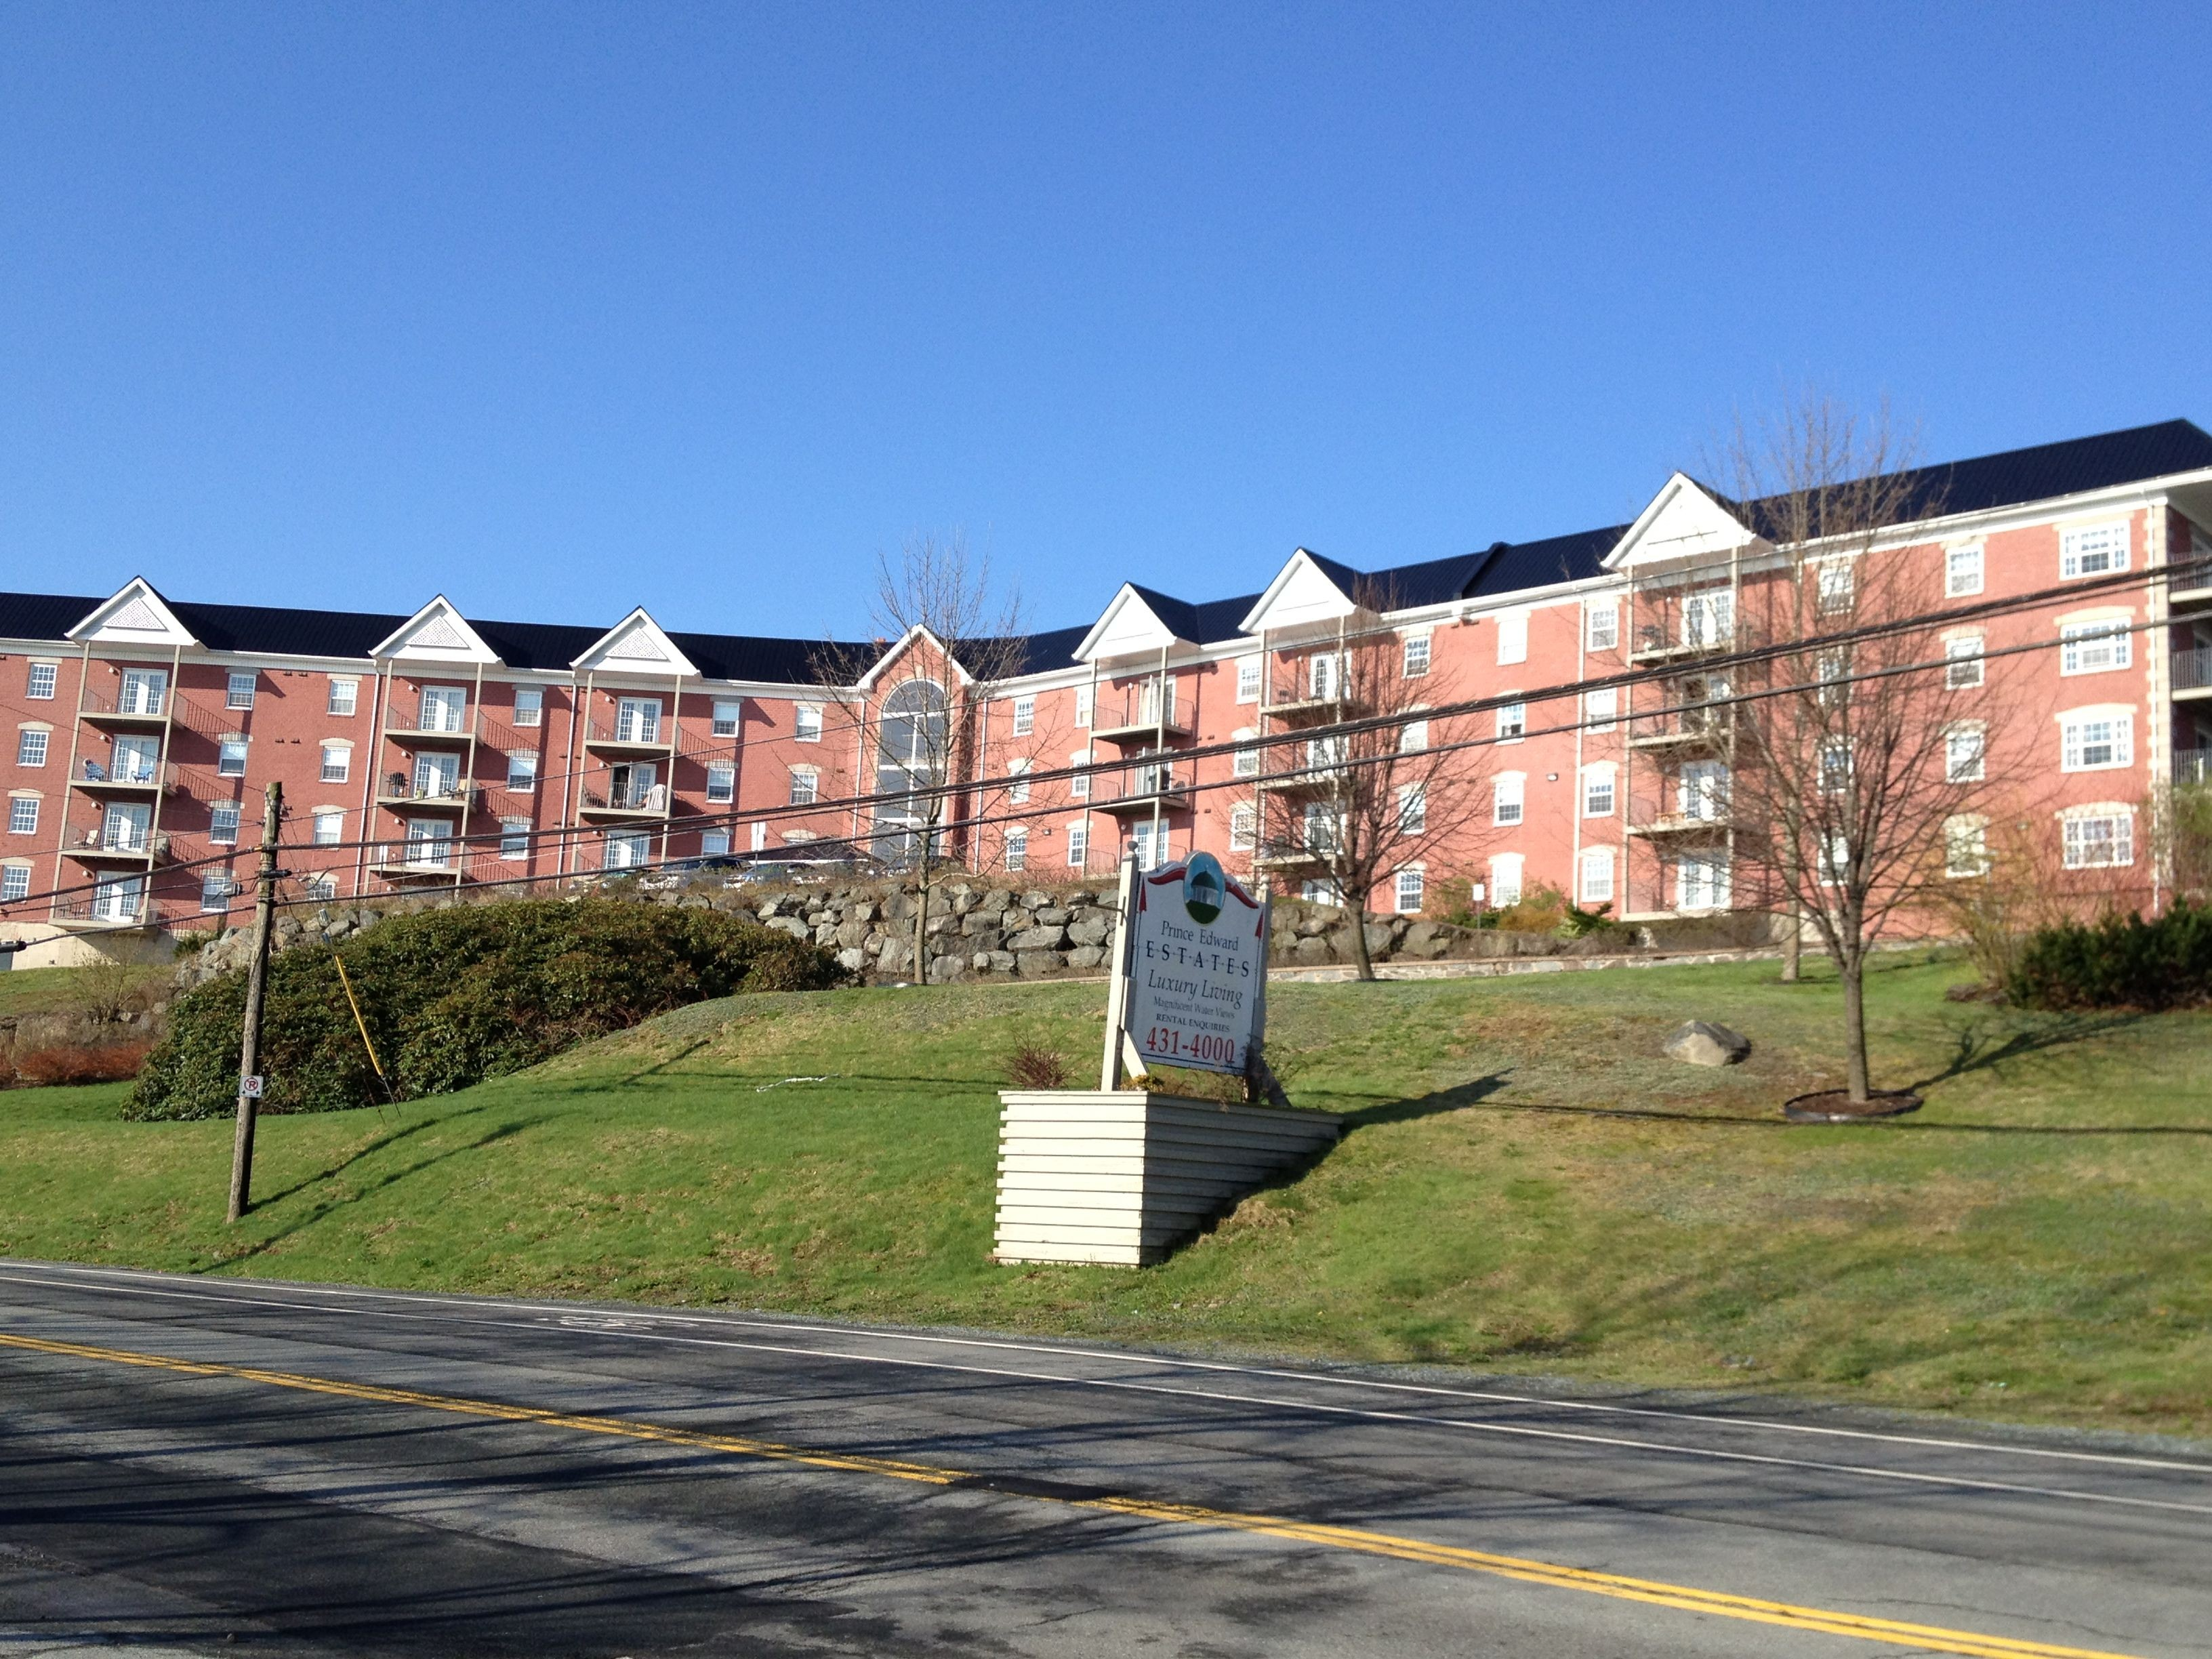 The Princes Lodge Estates apartments now sit on the former motel site.